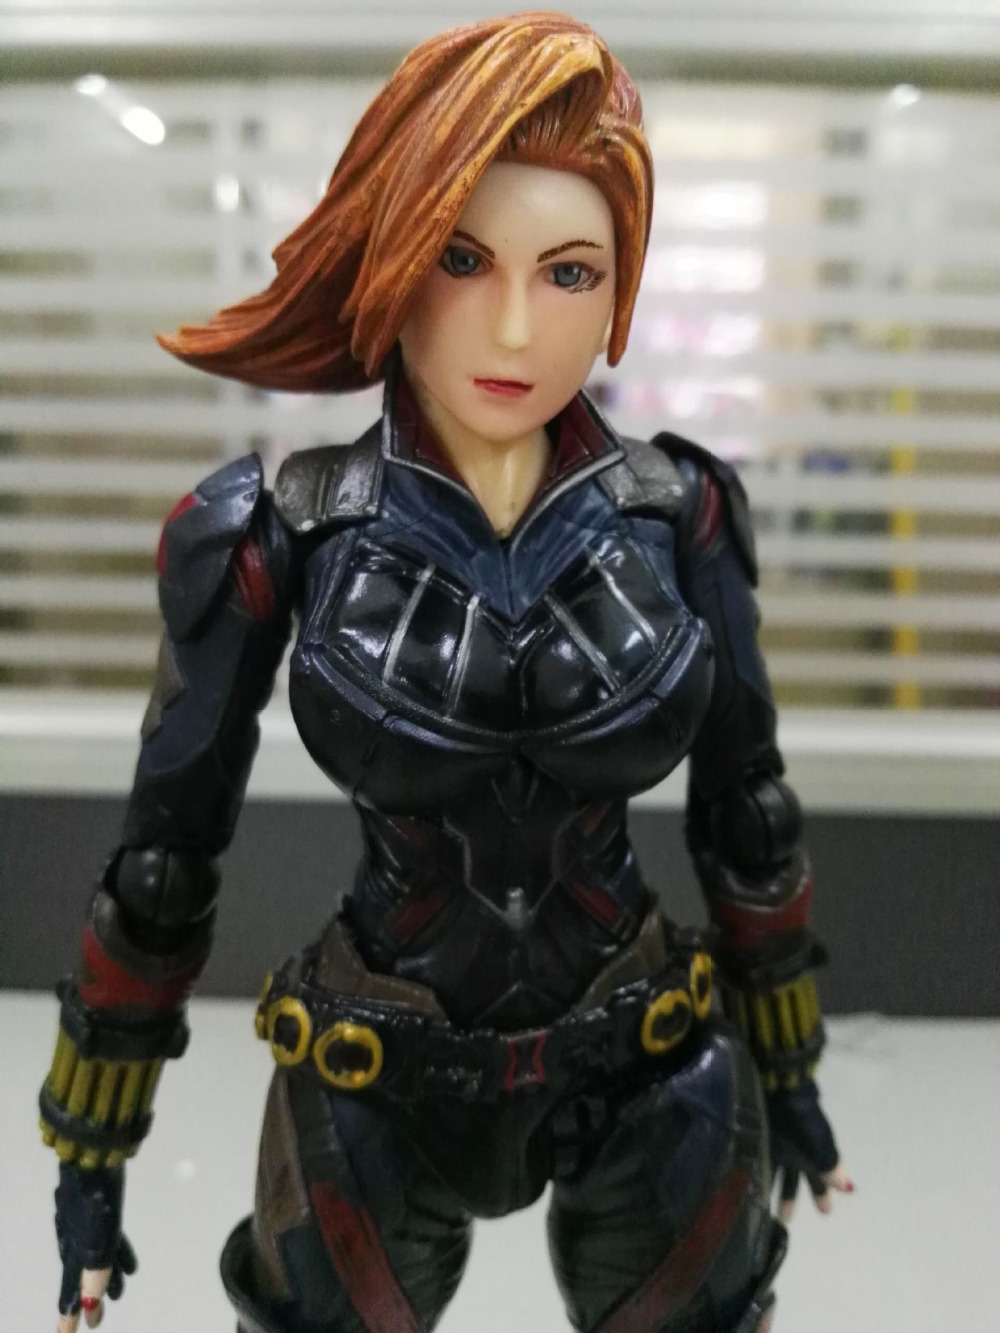 PlayArts KAI Age of Ultron Black Widow PA PVC Action Figure Collectible Model Toy with box neca god of war 3 kratos 18 inches kratos ghost of sparta pvc action figure collectible model doll toy with box